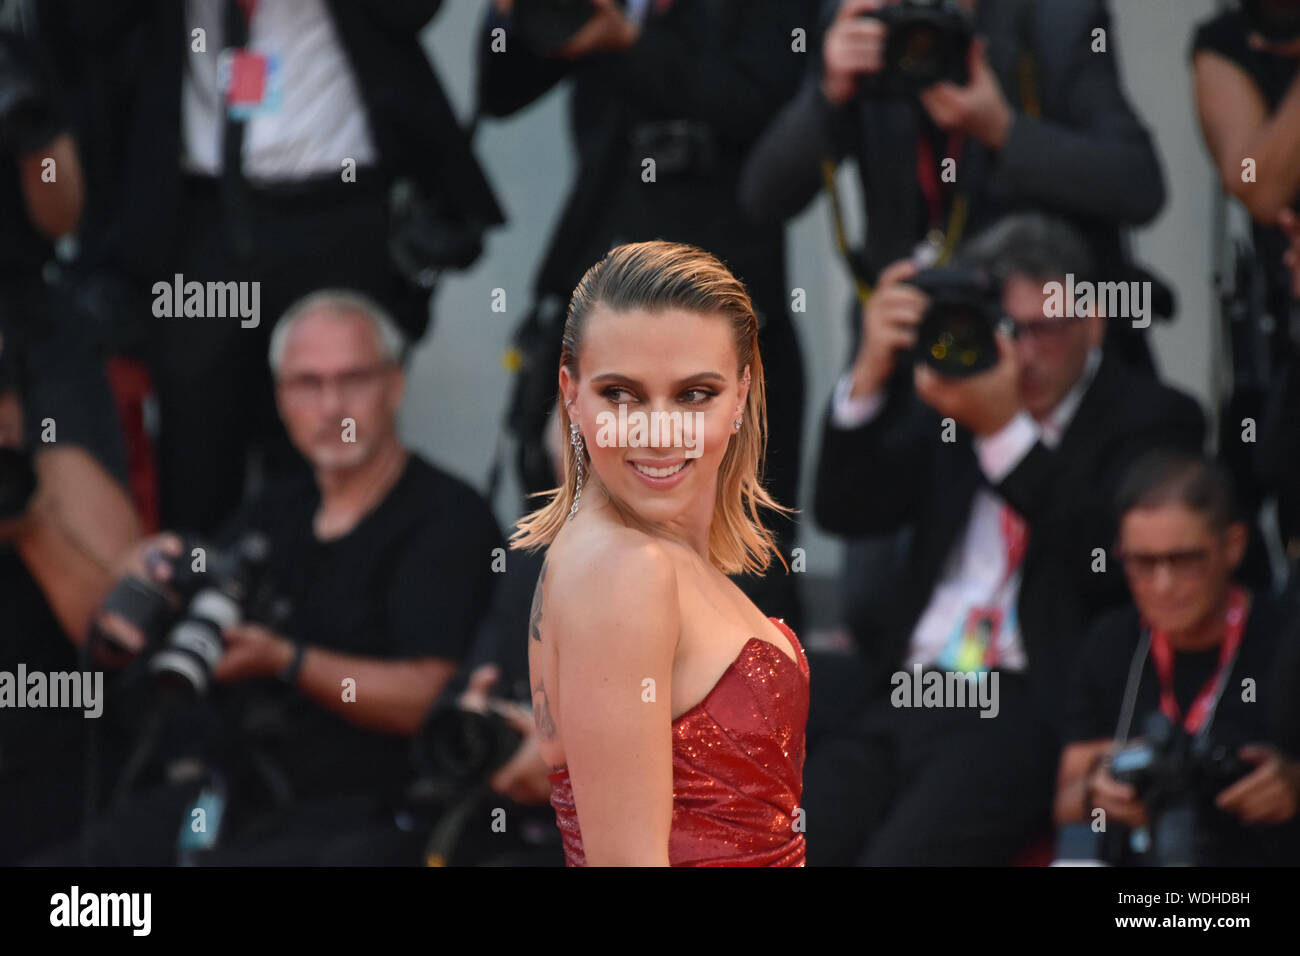 """VENICE, Italy. 29th Aug, 2019. Scarlett Johansson walks the red carpet ahead of the """"Marriage Story"""" screening during the 76th Venice Film Festival at Sala Grande on August 29, 2019 in Venice, Italy. Credit: Andrea Merola/Awakening/Alamy Live News Stock Photo"""